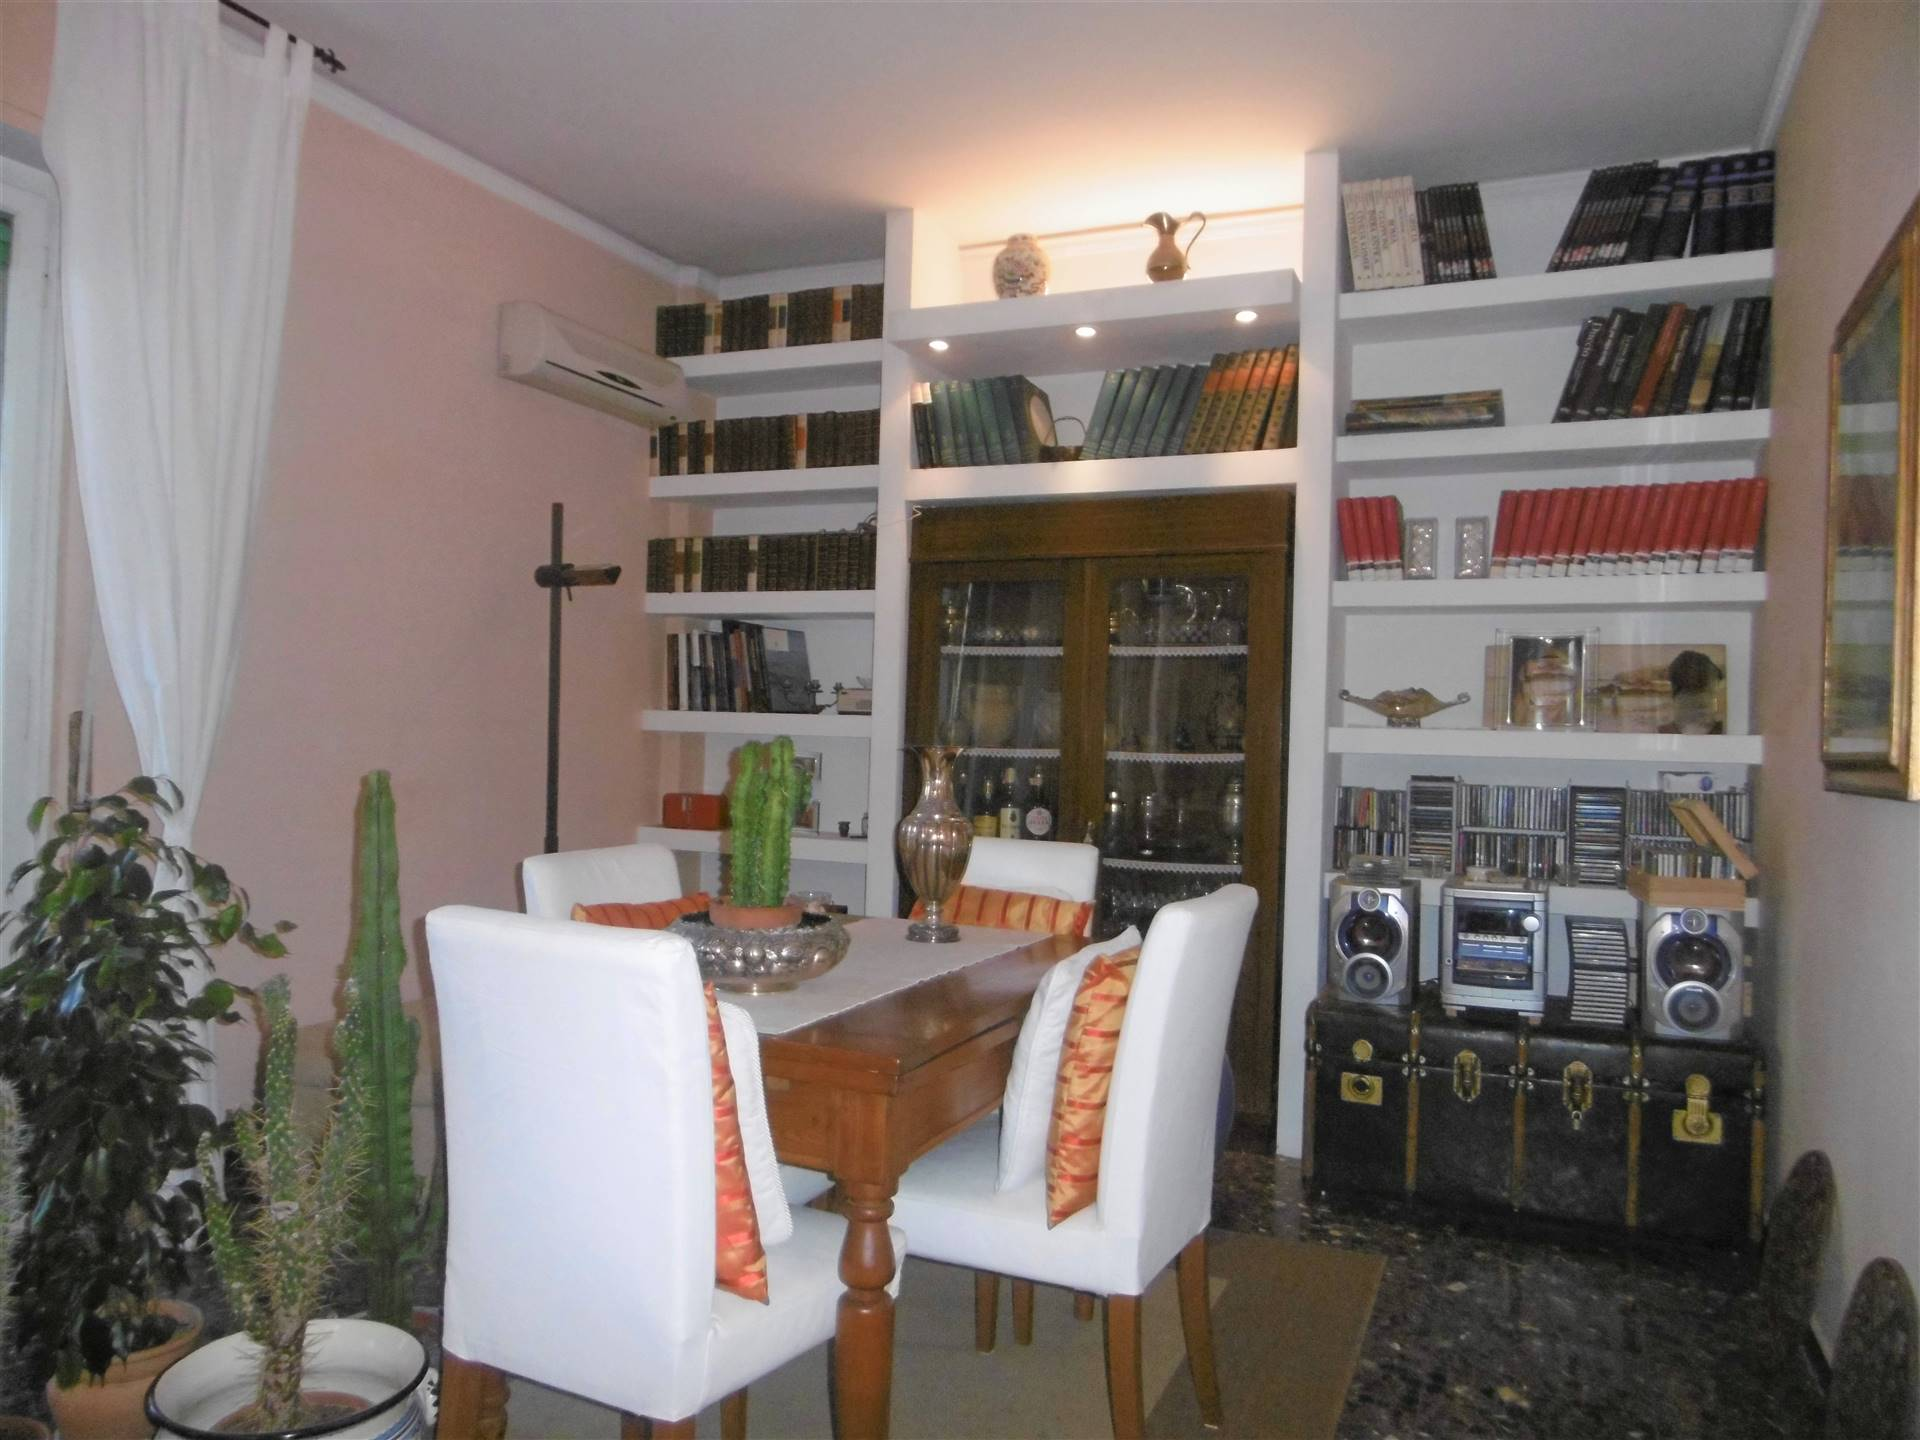 NOVOLI, FIRENZE, Apartment for sale of 145 Sq. mt., Excellent Condition, Heating Centralized, placed at 4° on 7, composed by: 6 Rooms, Separate